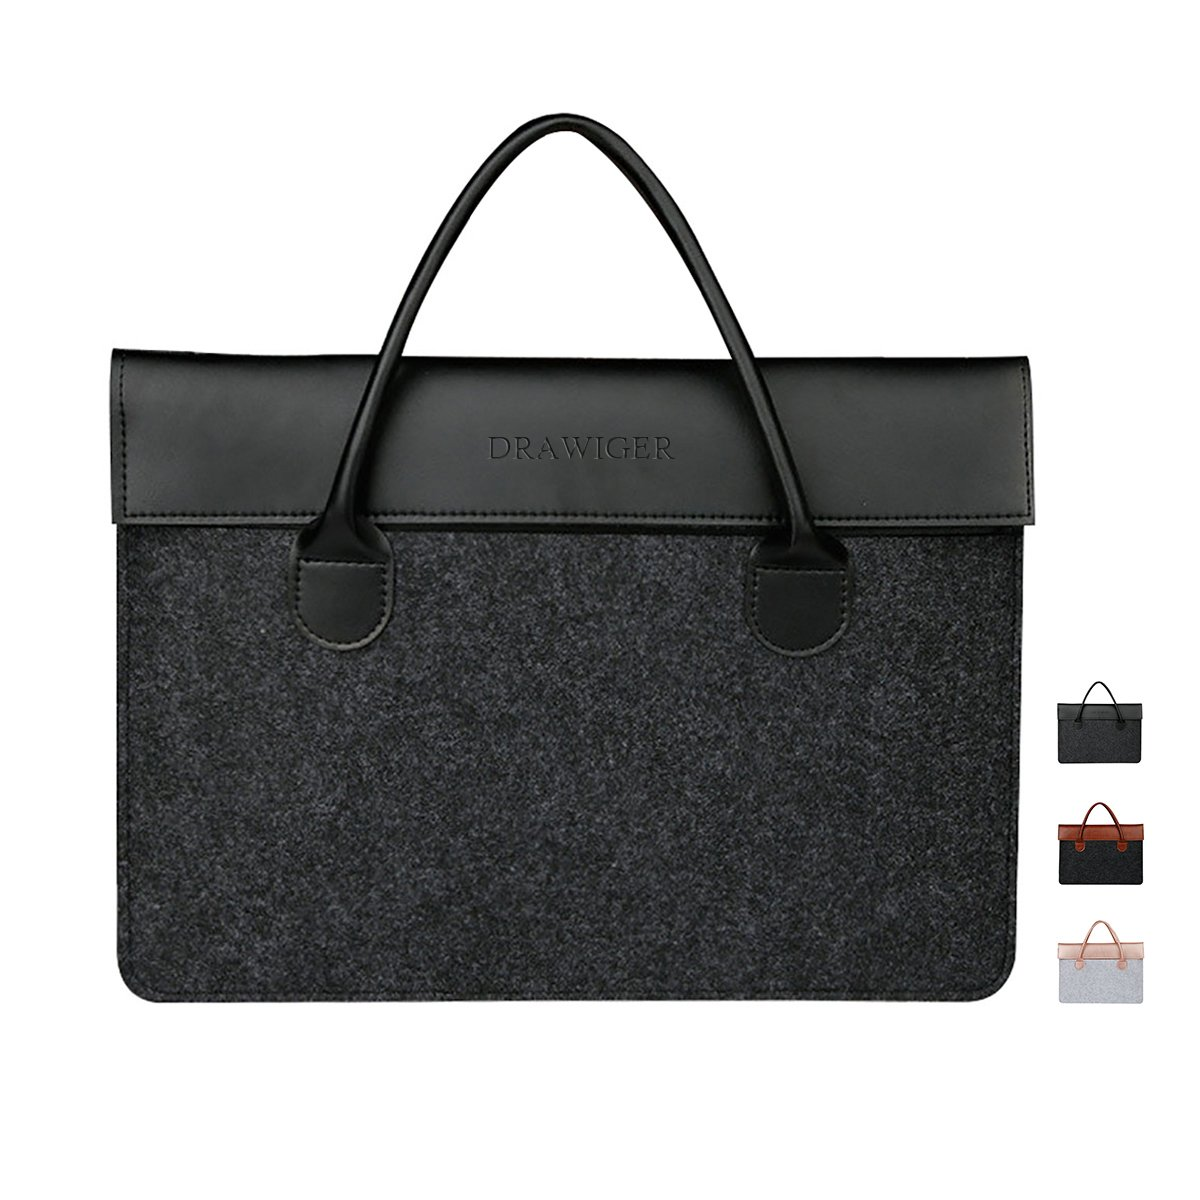 DRAWIGER Wool and Leather Laptop Bag Sleeve Briefcase Handbag Case for Men Notebook Computer Ultrabook for 15 Inch Macbook Pro 2015 (15.6 Inch, Black)